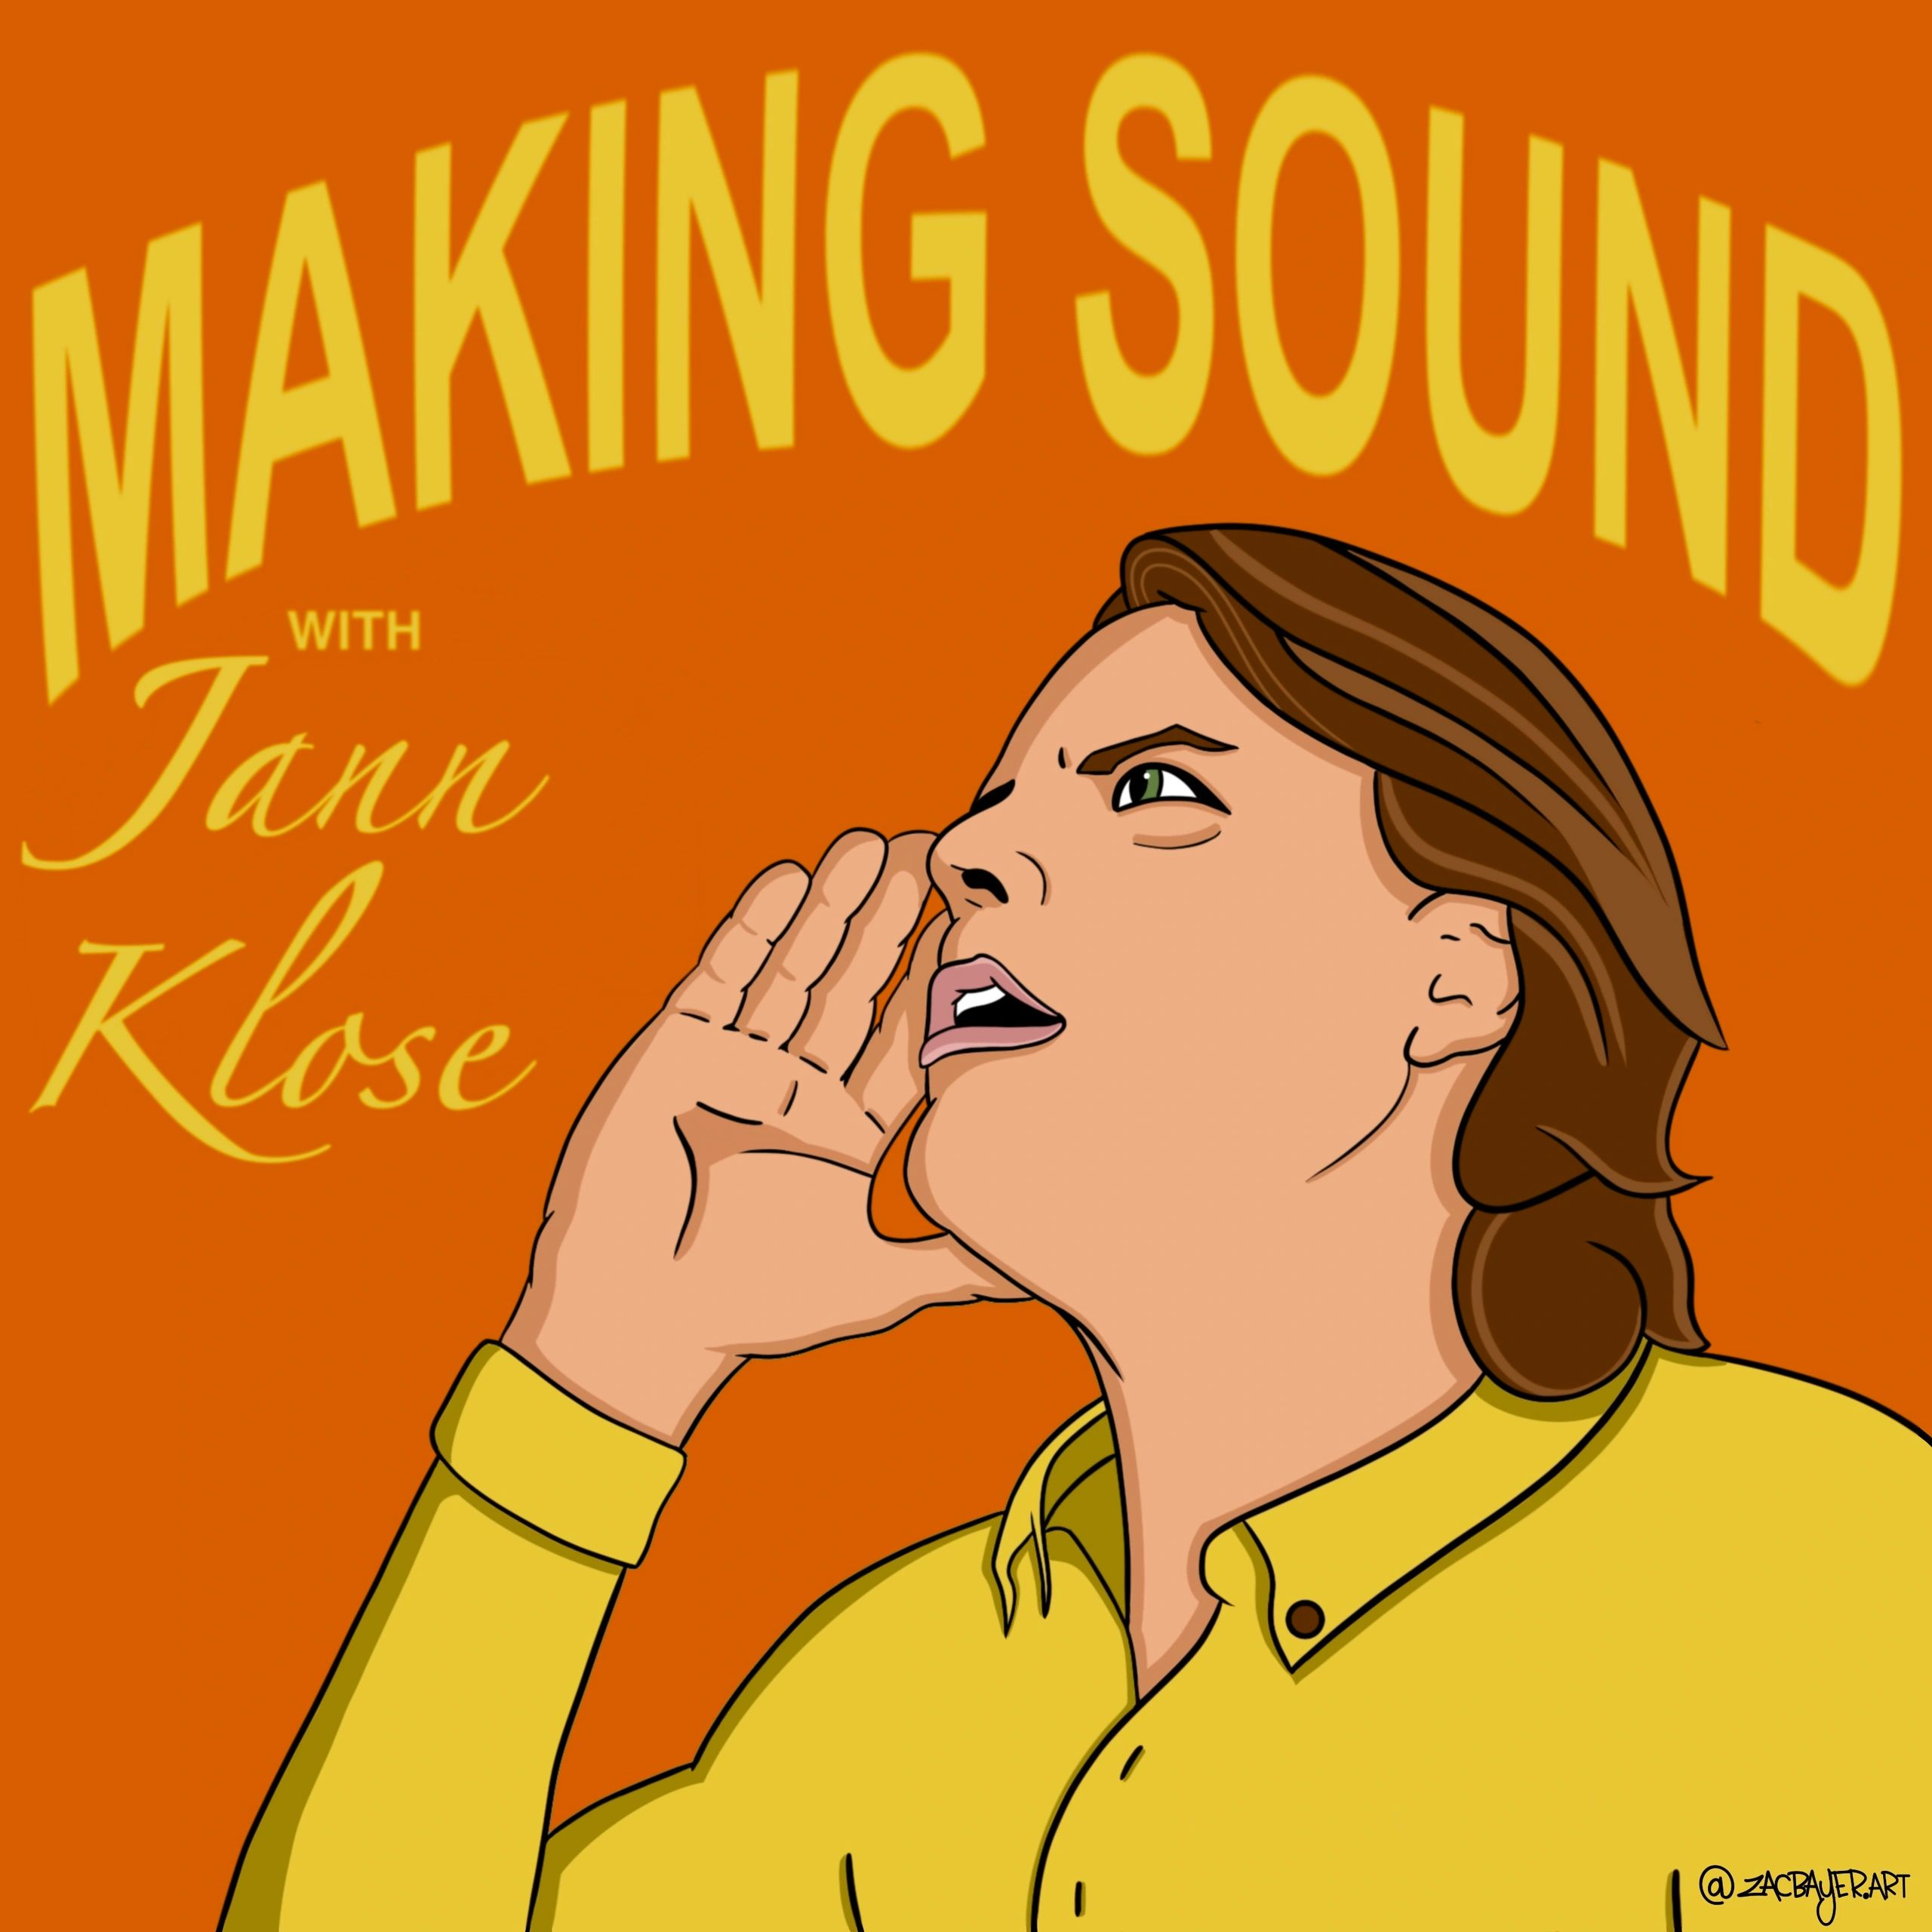 jann klose making sound podcast logo